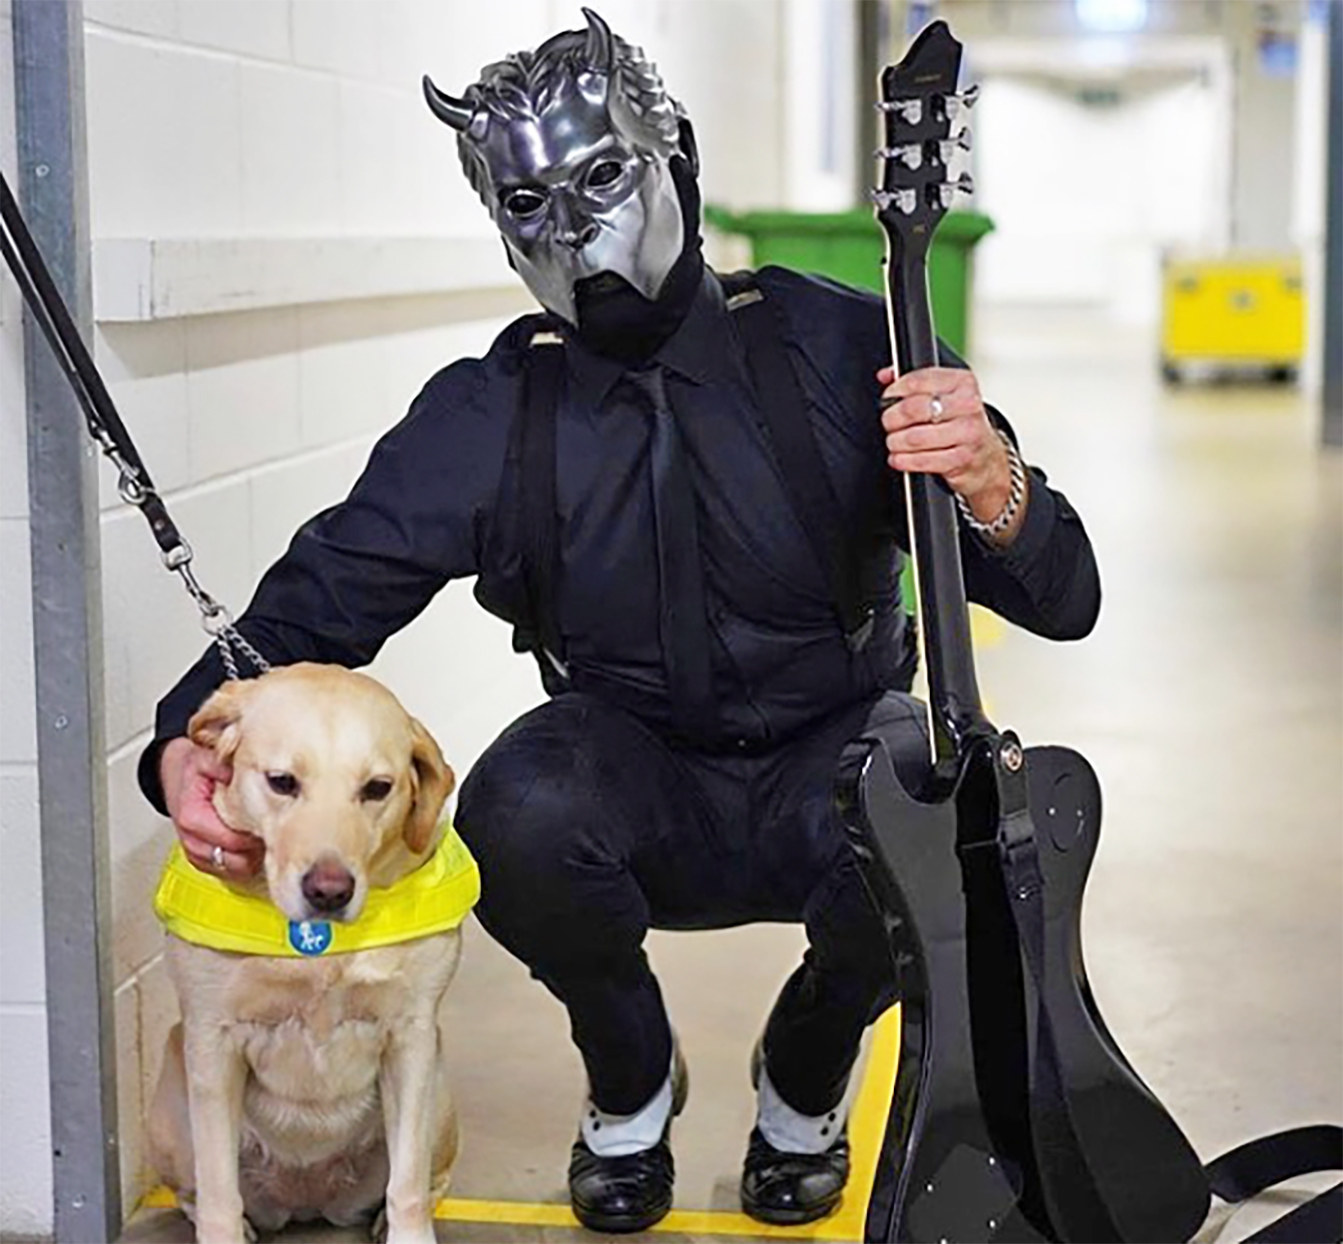 Yellow lab with yellow harness poses with a man in a heavy metal music costume